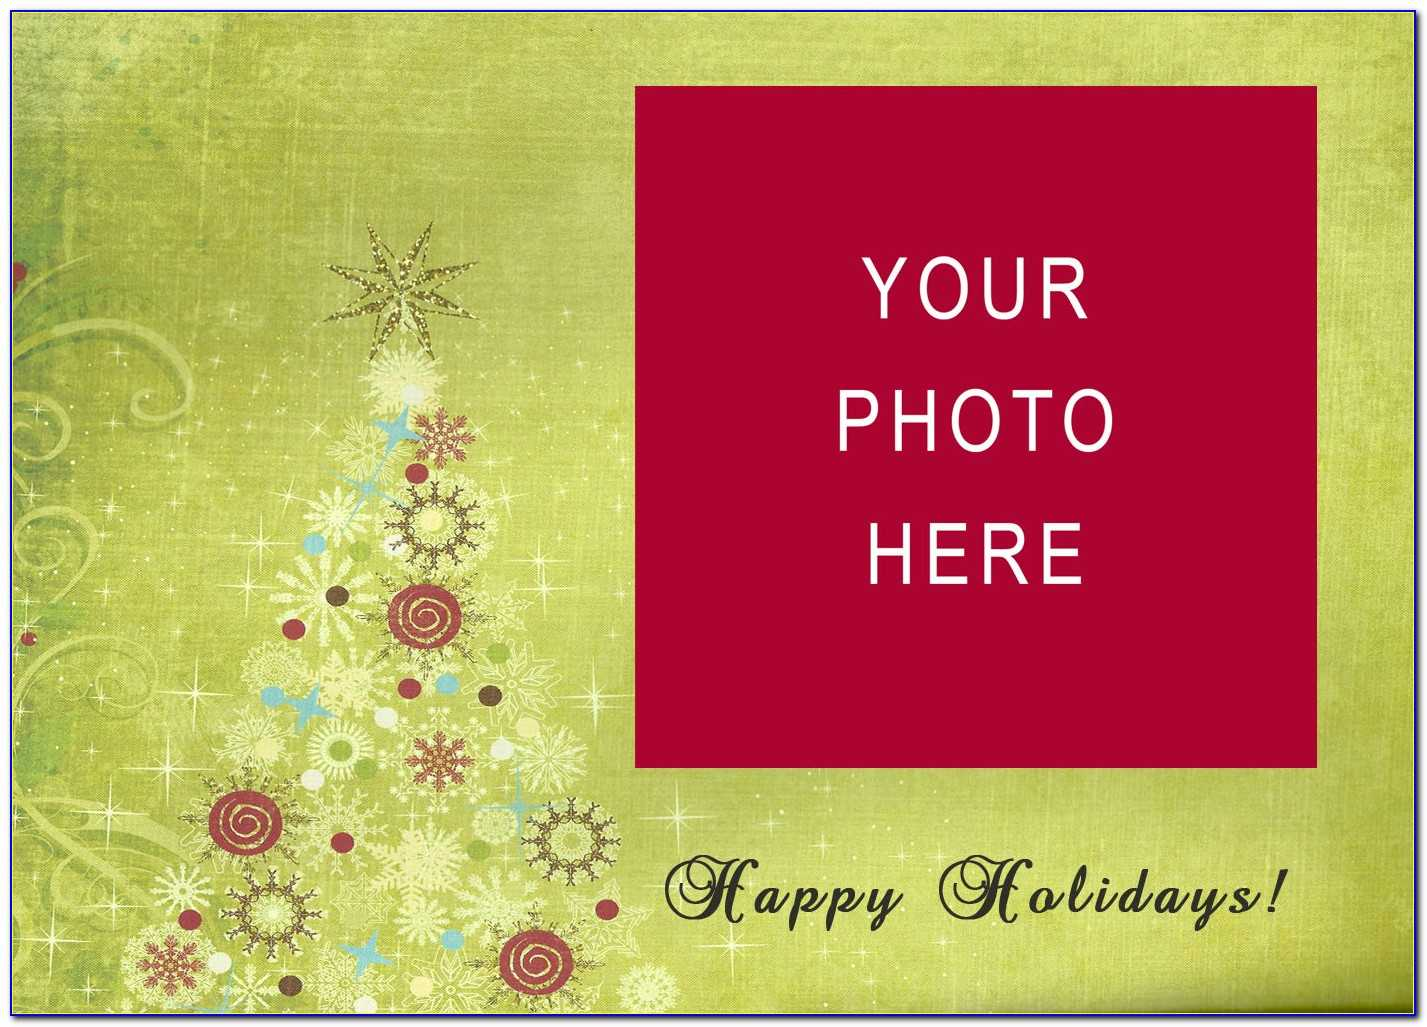 3D Pop Up Christmas Card Templates Free For Free Christmas Card Templates For Photographers